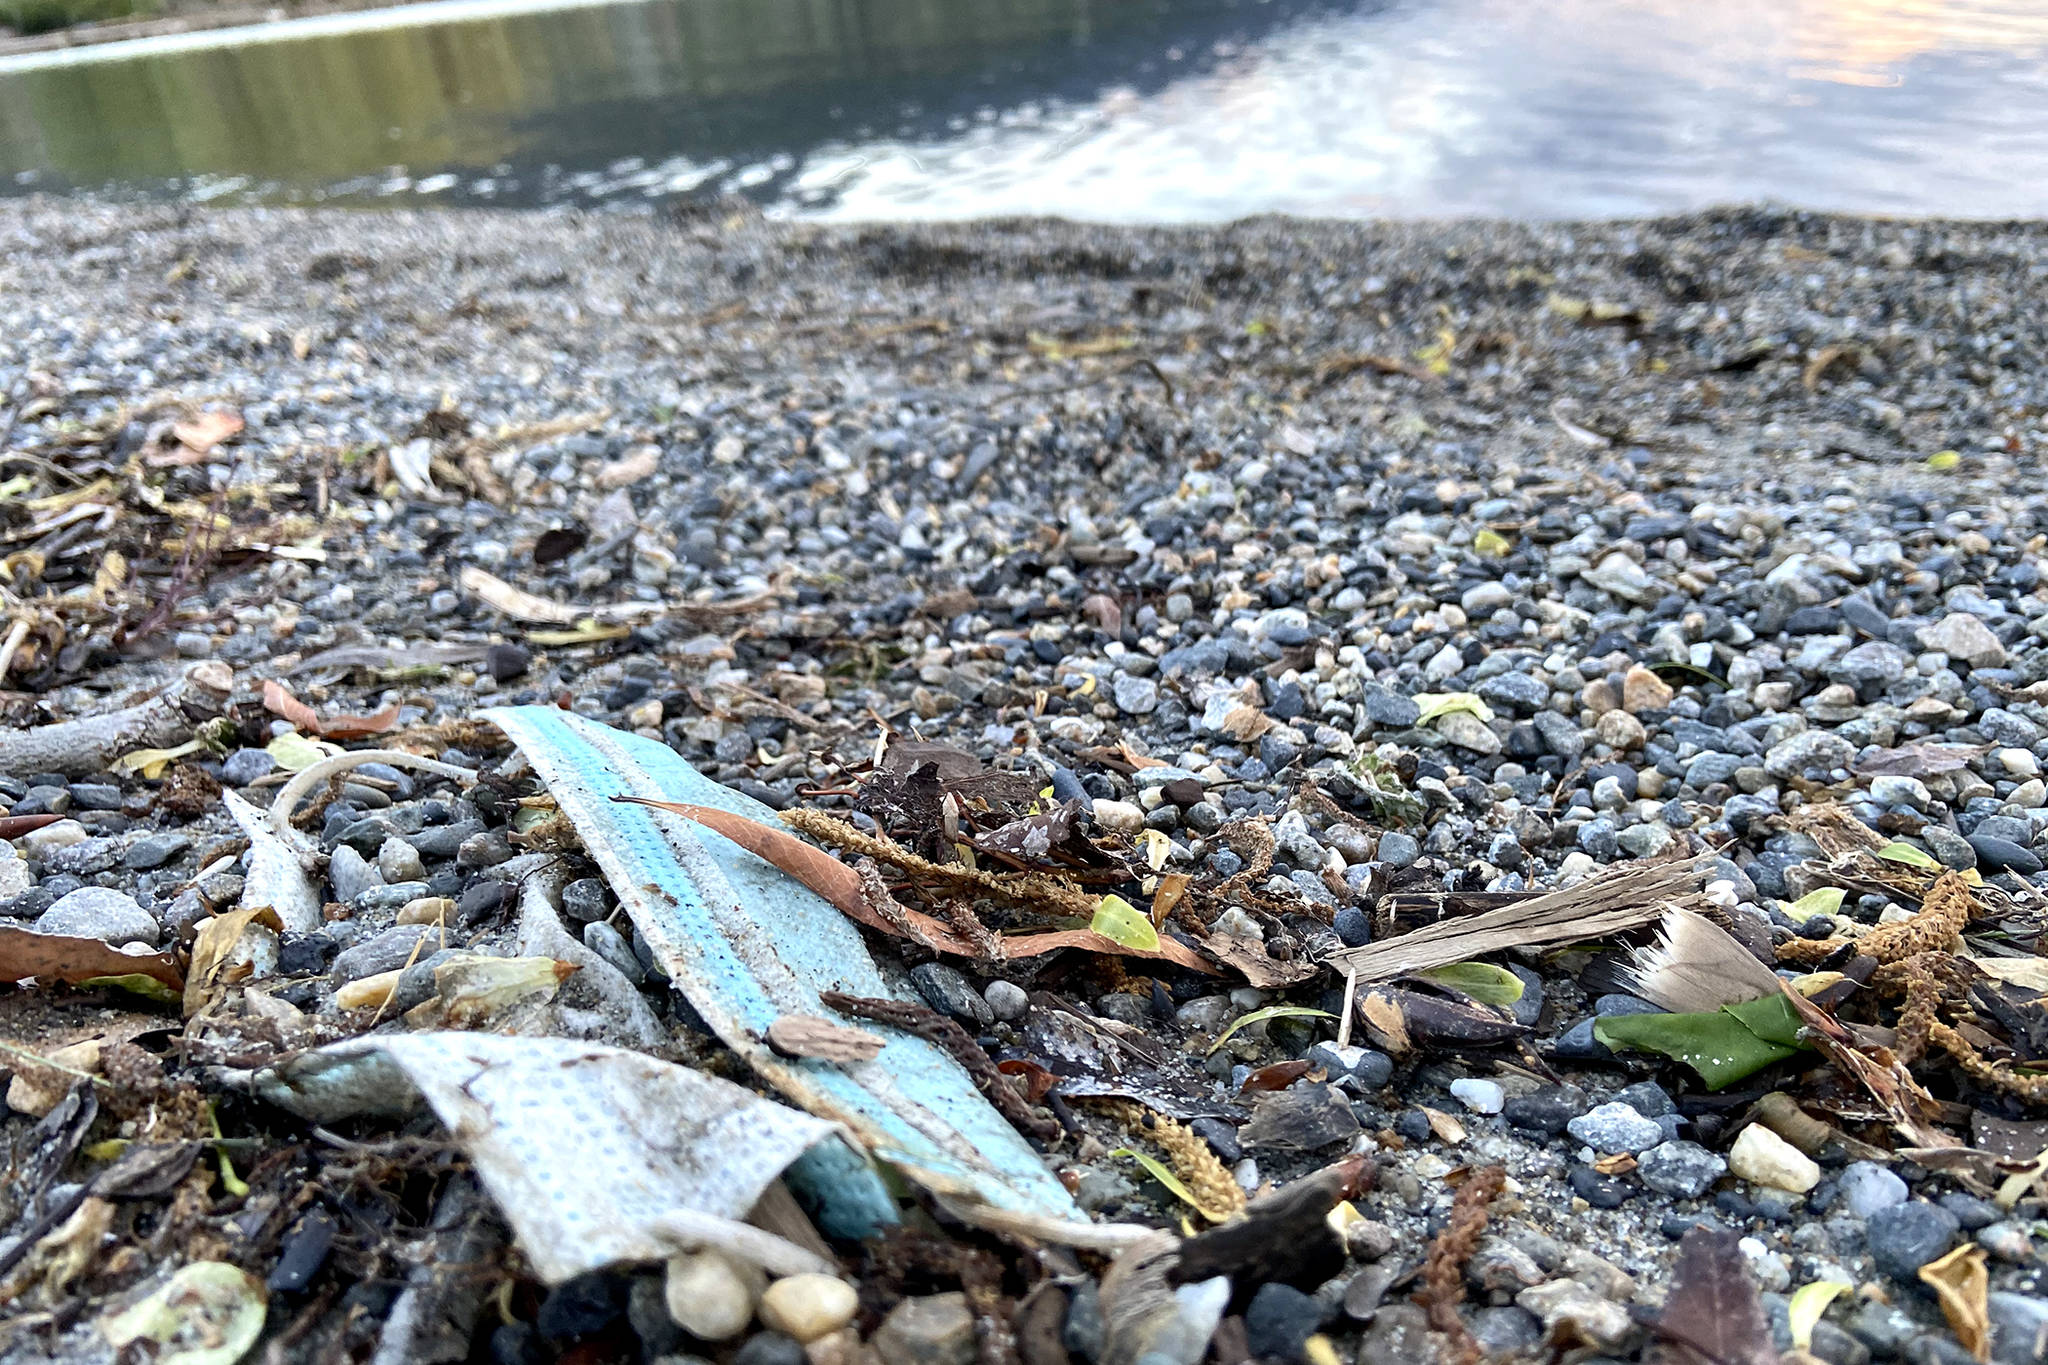 COVID-related trash is washing up on shorelines across the world, including Coldstream's Kal Beach, as pictured in this May 2021 photograph. (Jennifer Smith - Black Press)